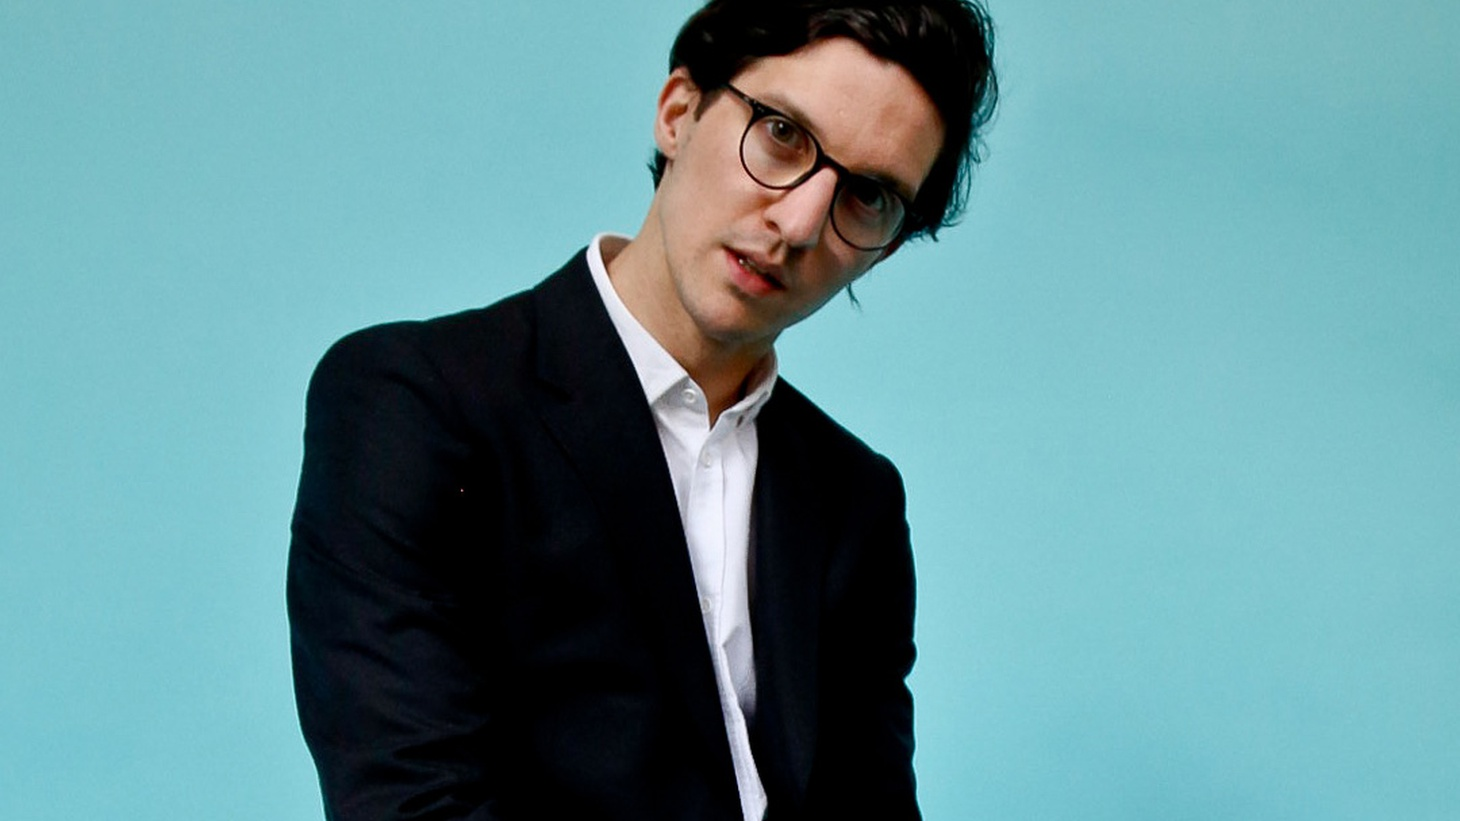 Liverpool native Dan Croll expertly crafts smart, catchy indie pop. His sophomore release Emerging Adulthoodis a triumph.